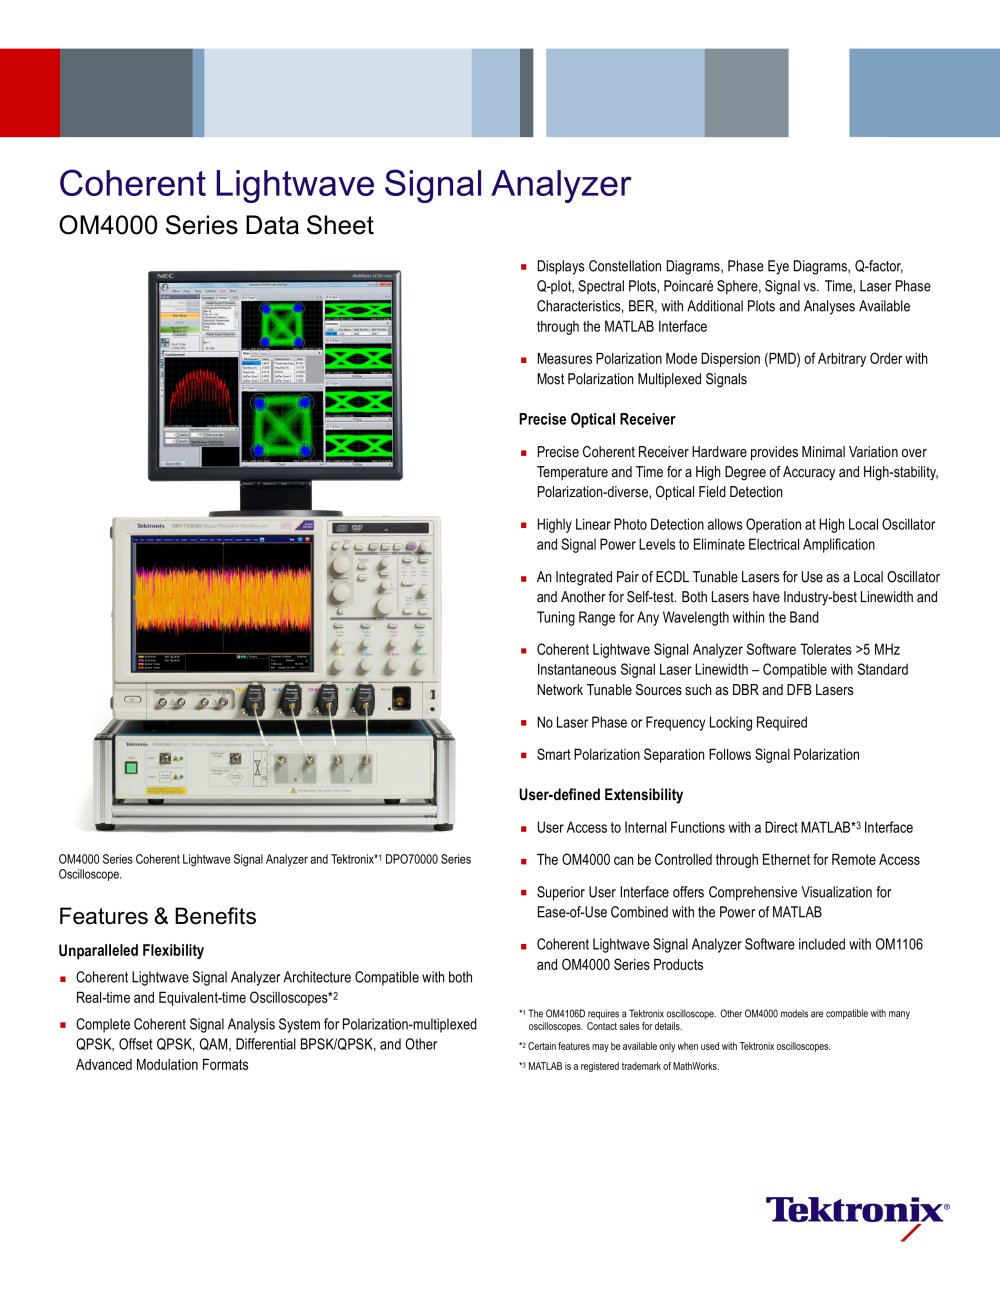 Coherent lightwave signal analyzer om4000 series tektronix pdf coherent lightwave signal analyzer om4000 series 1 16 pages ccuart Image collections